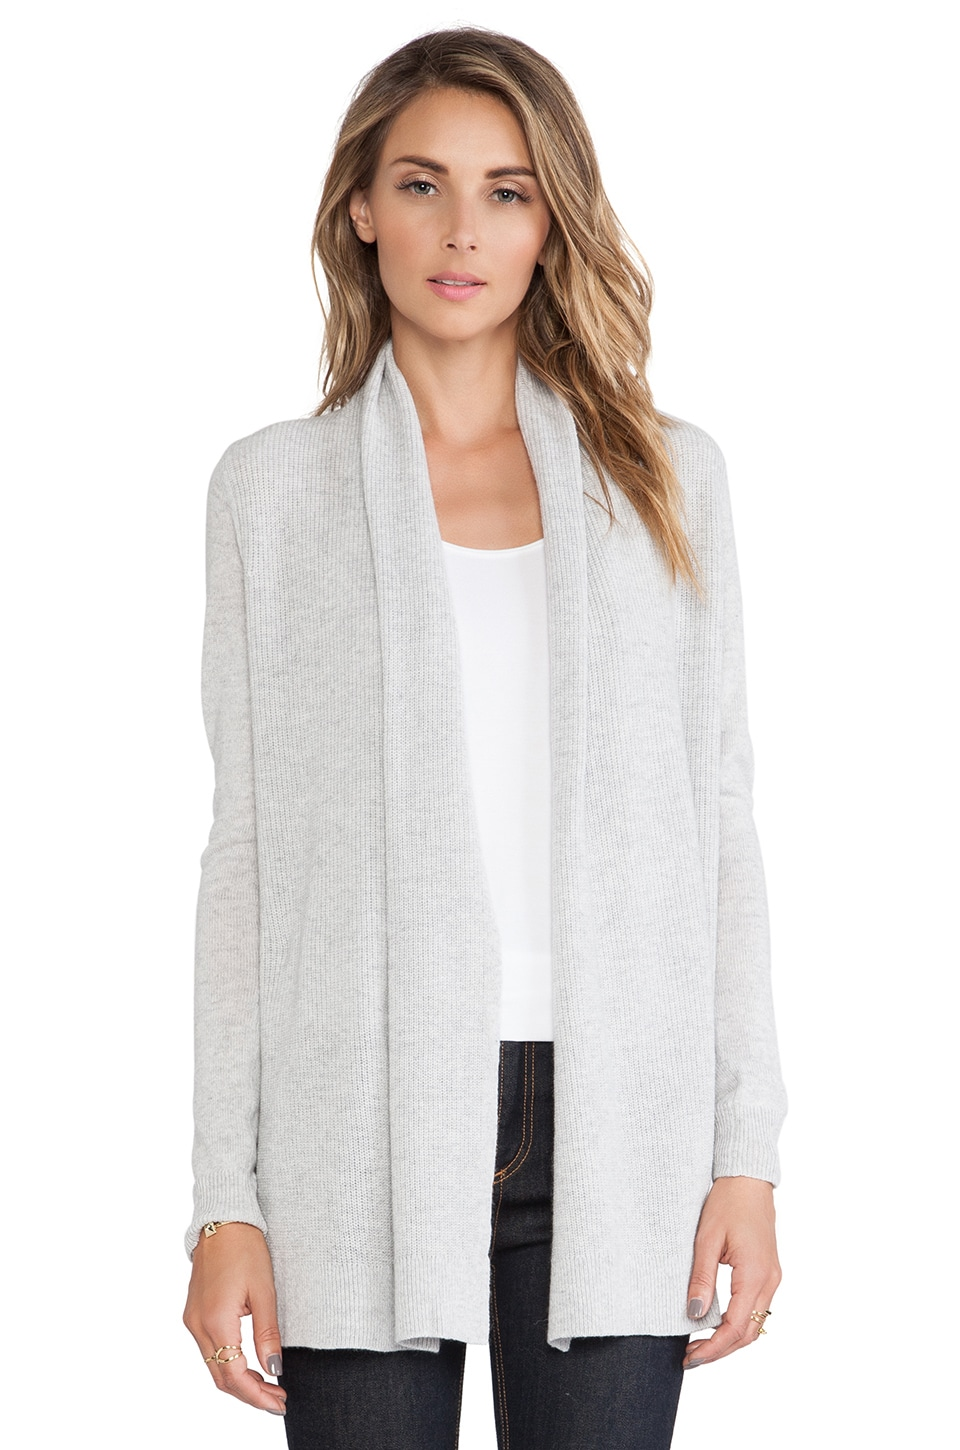 Theory Joyanne Cashmere Cardigan in Icy Grey | REVOLVE